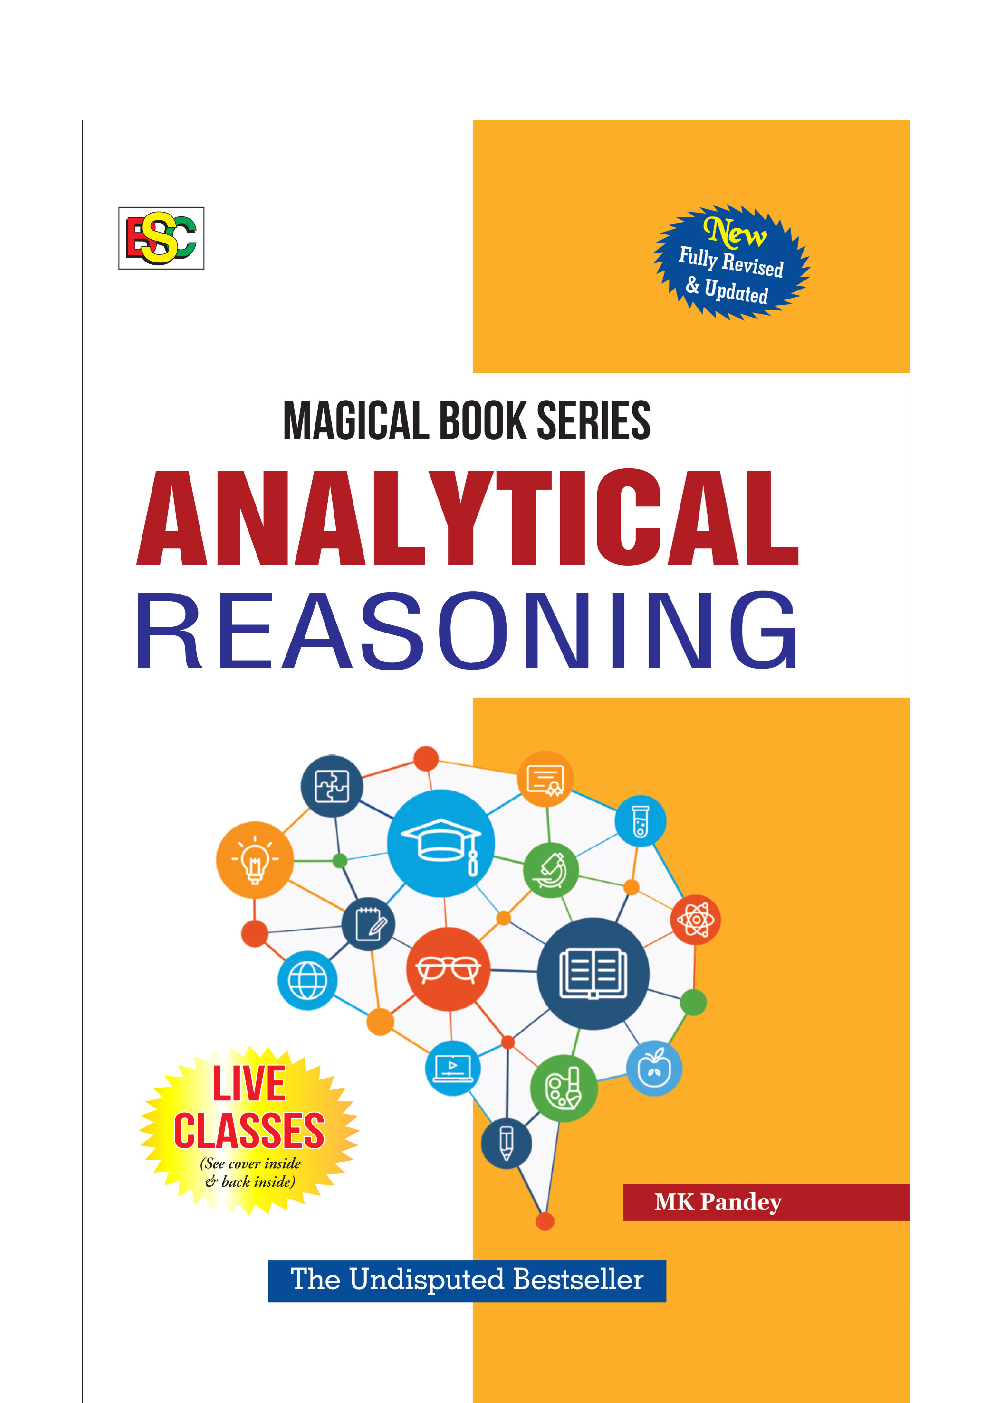 Magical Book Series: Analytical Reasoning - Page 1